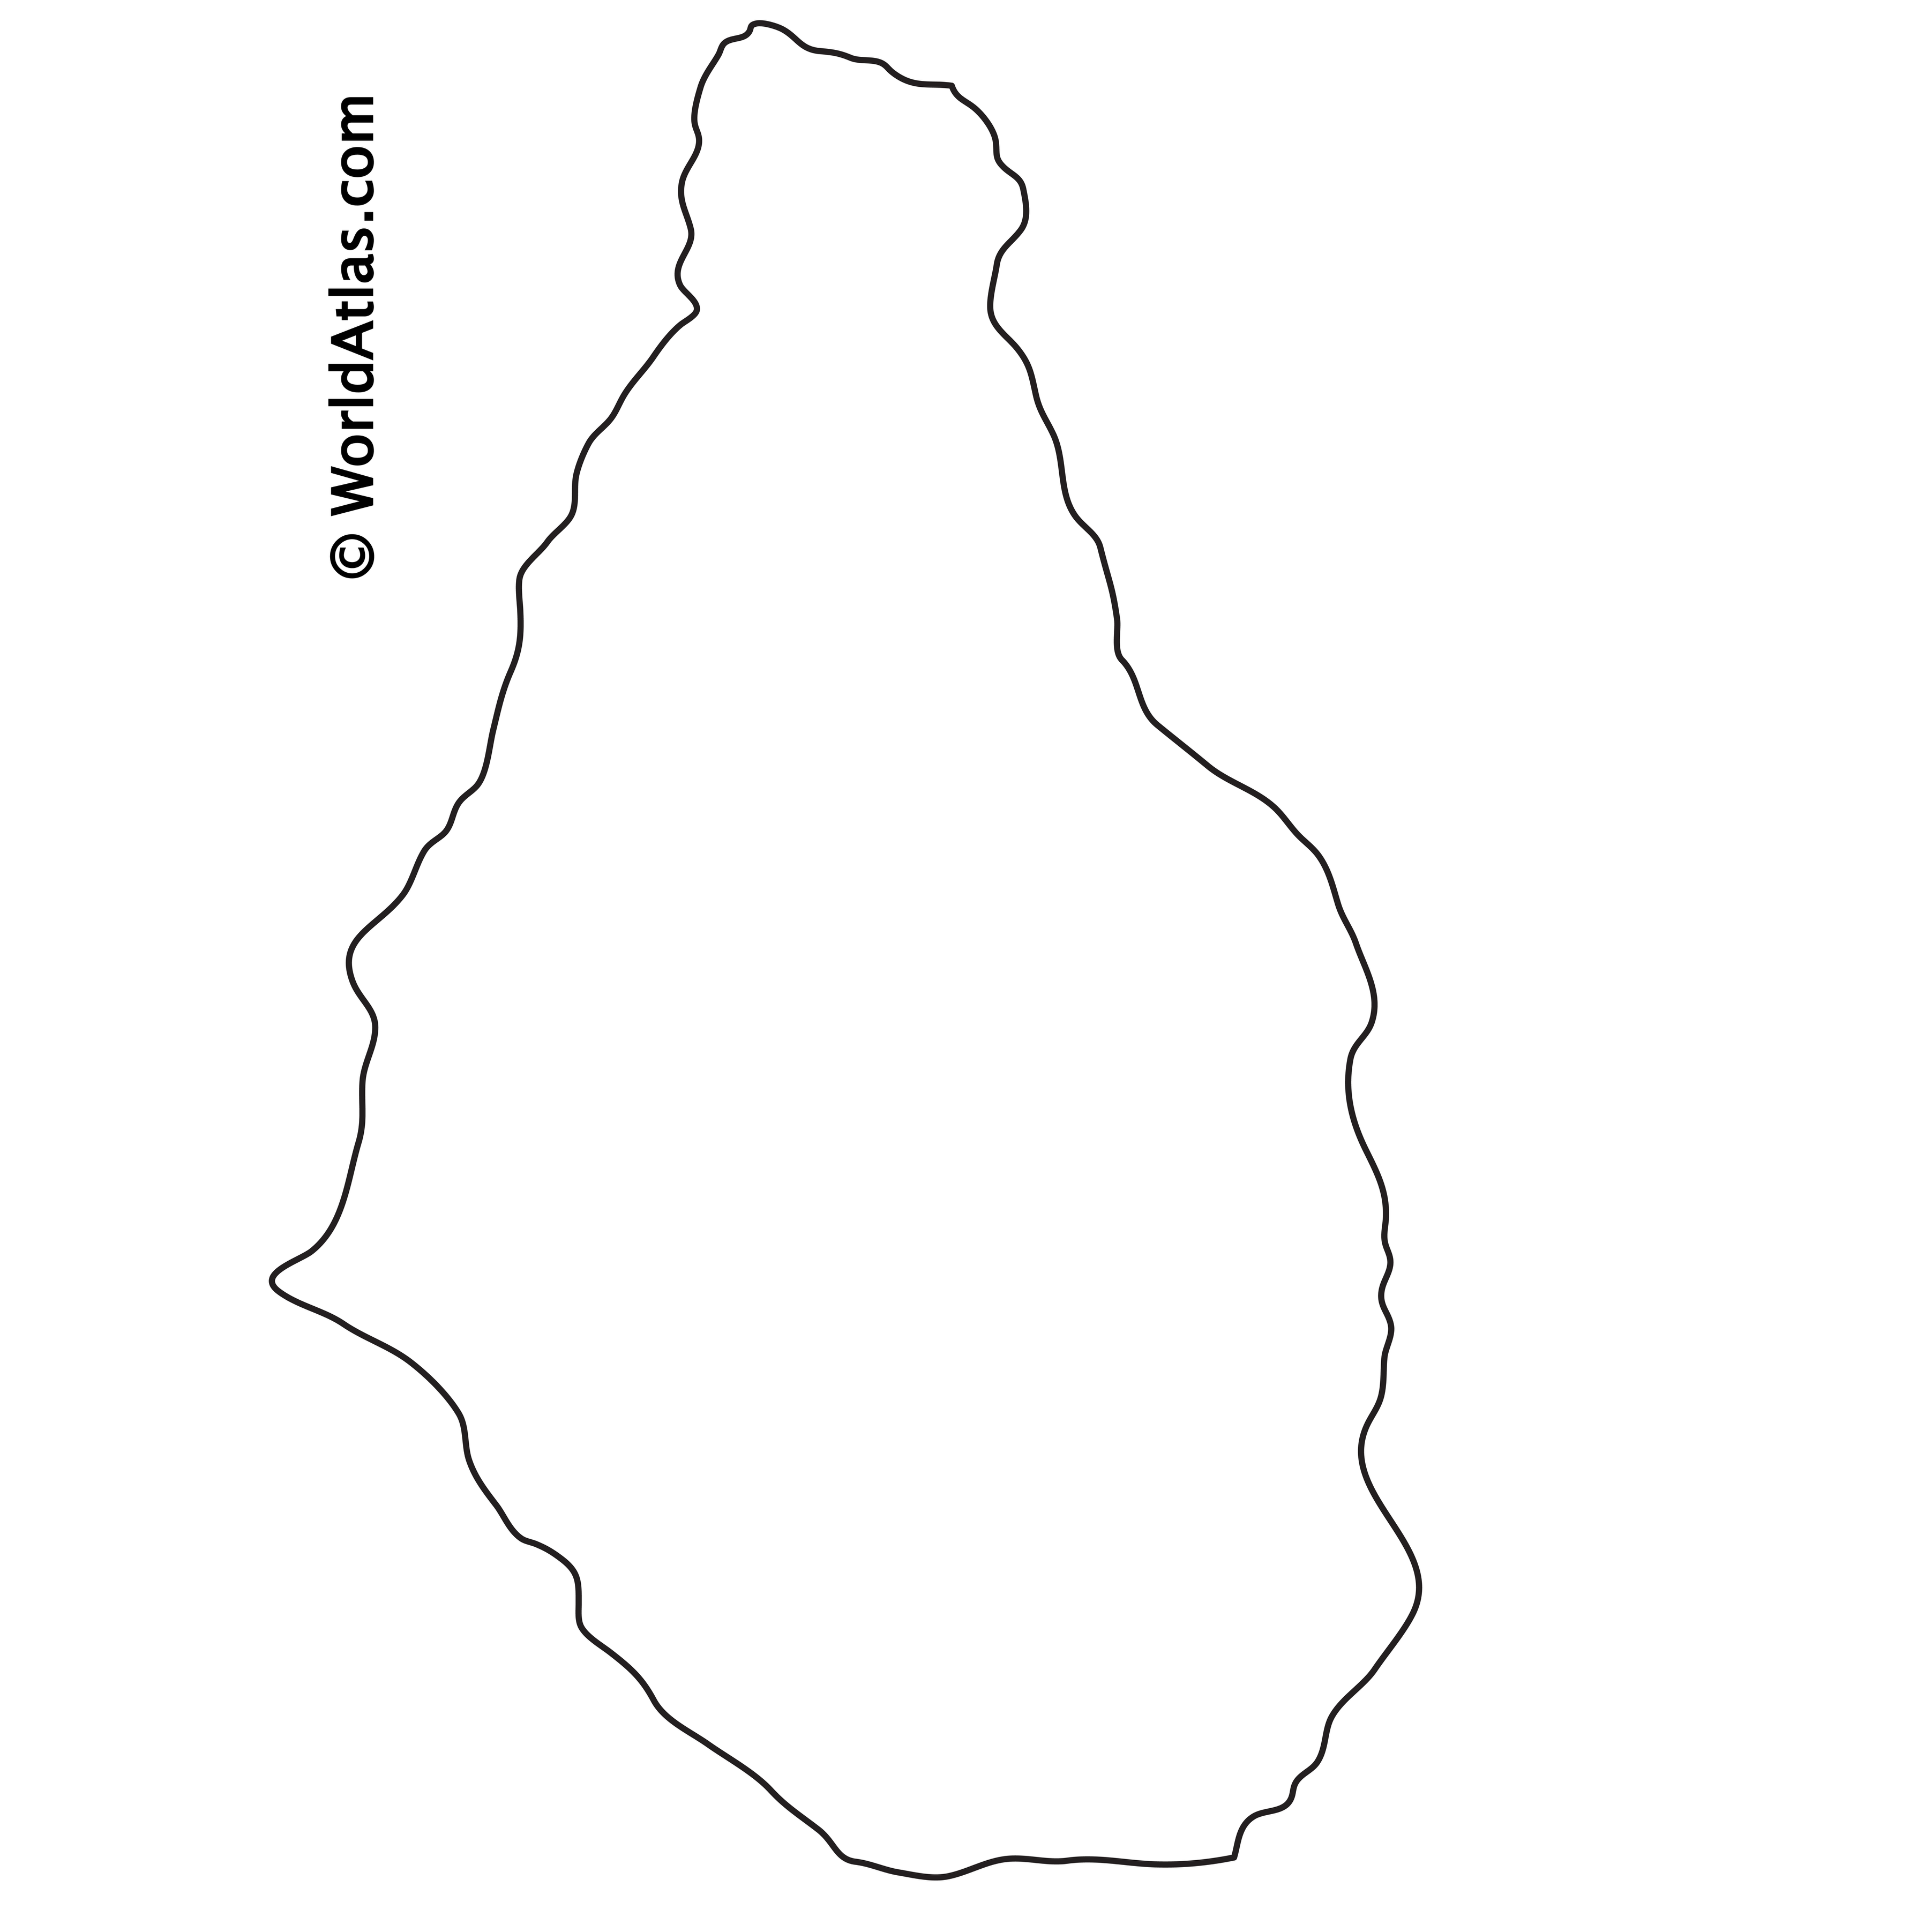 Blank Outline Map of Montserrat